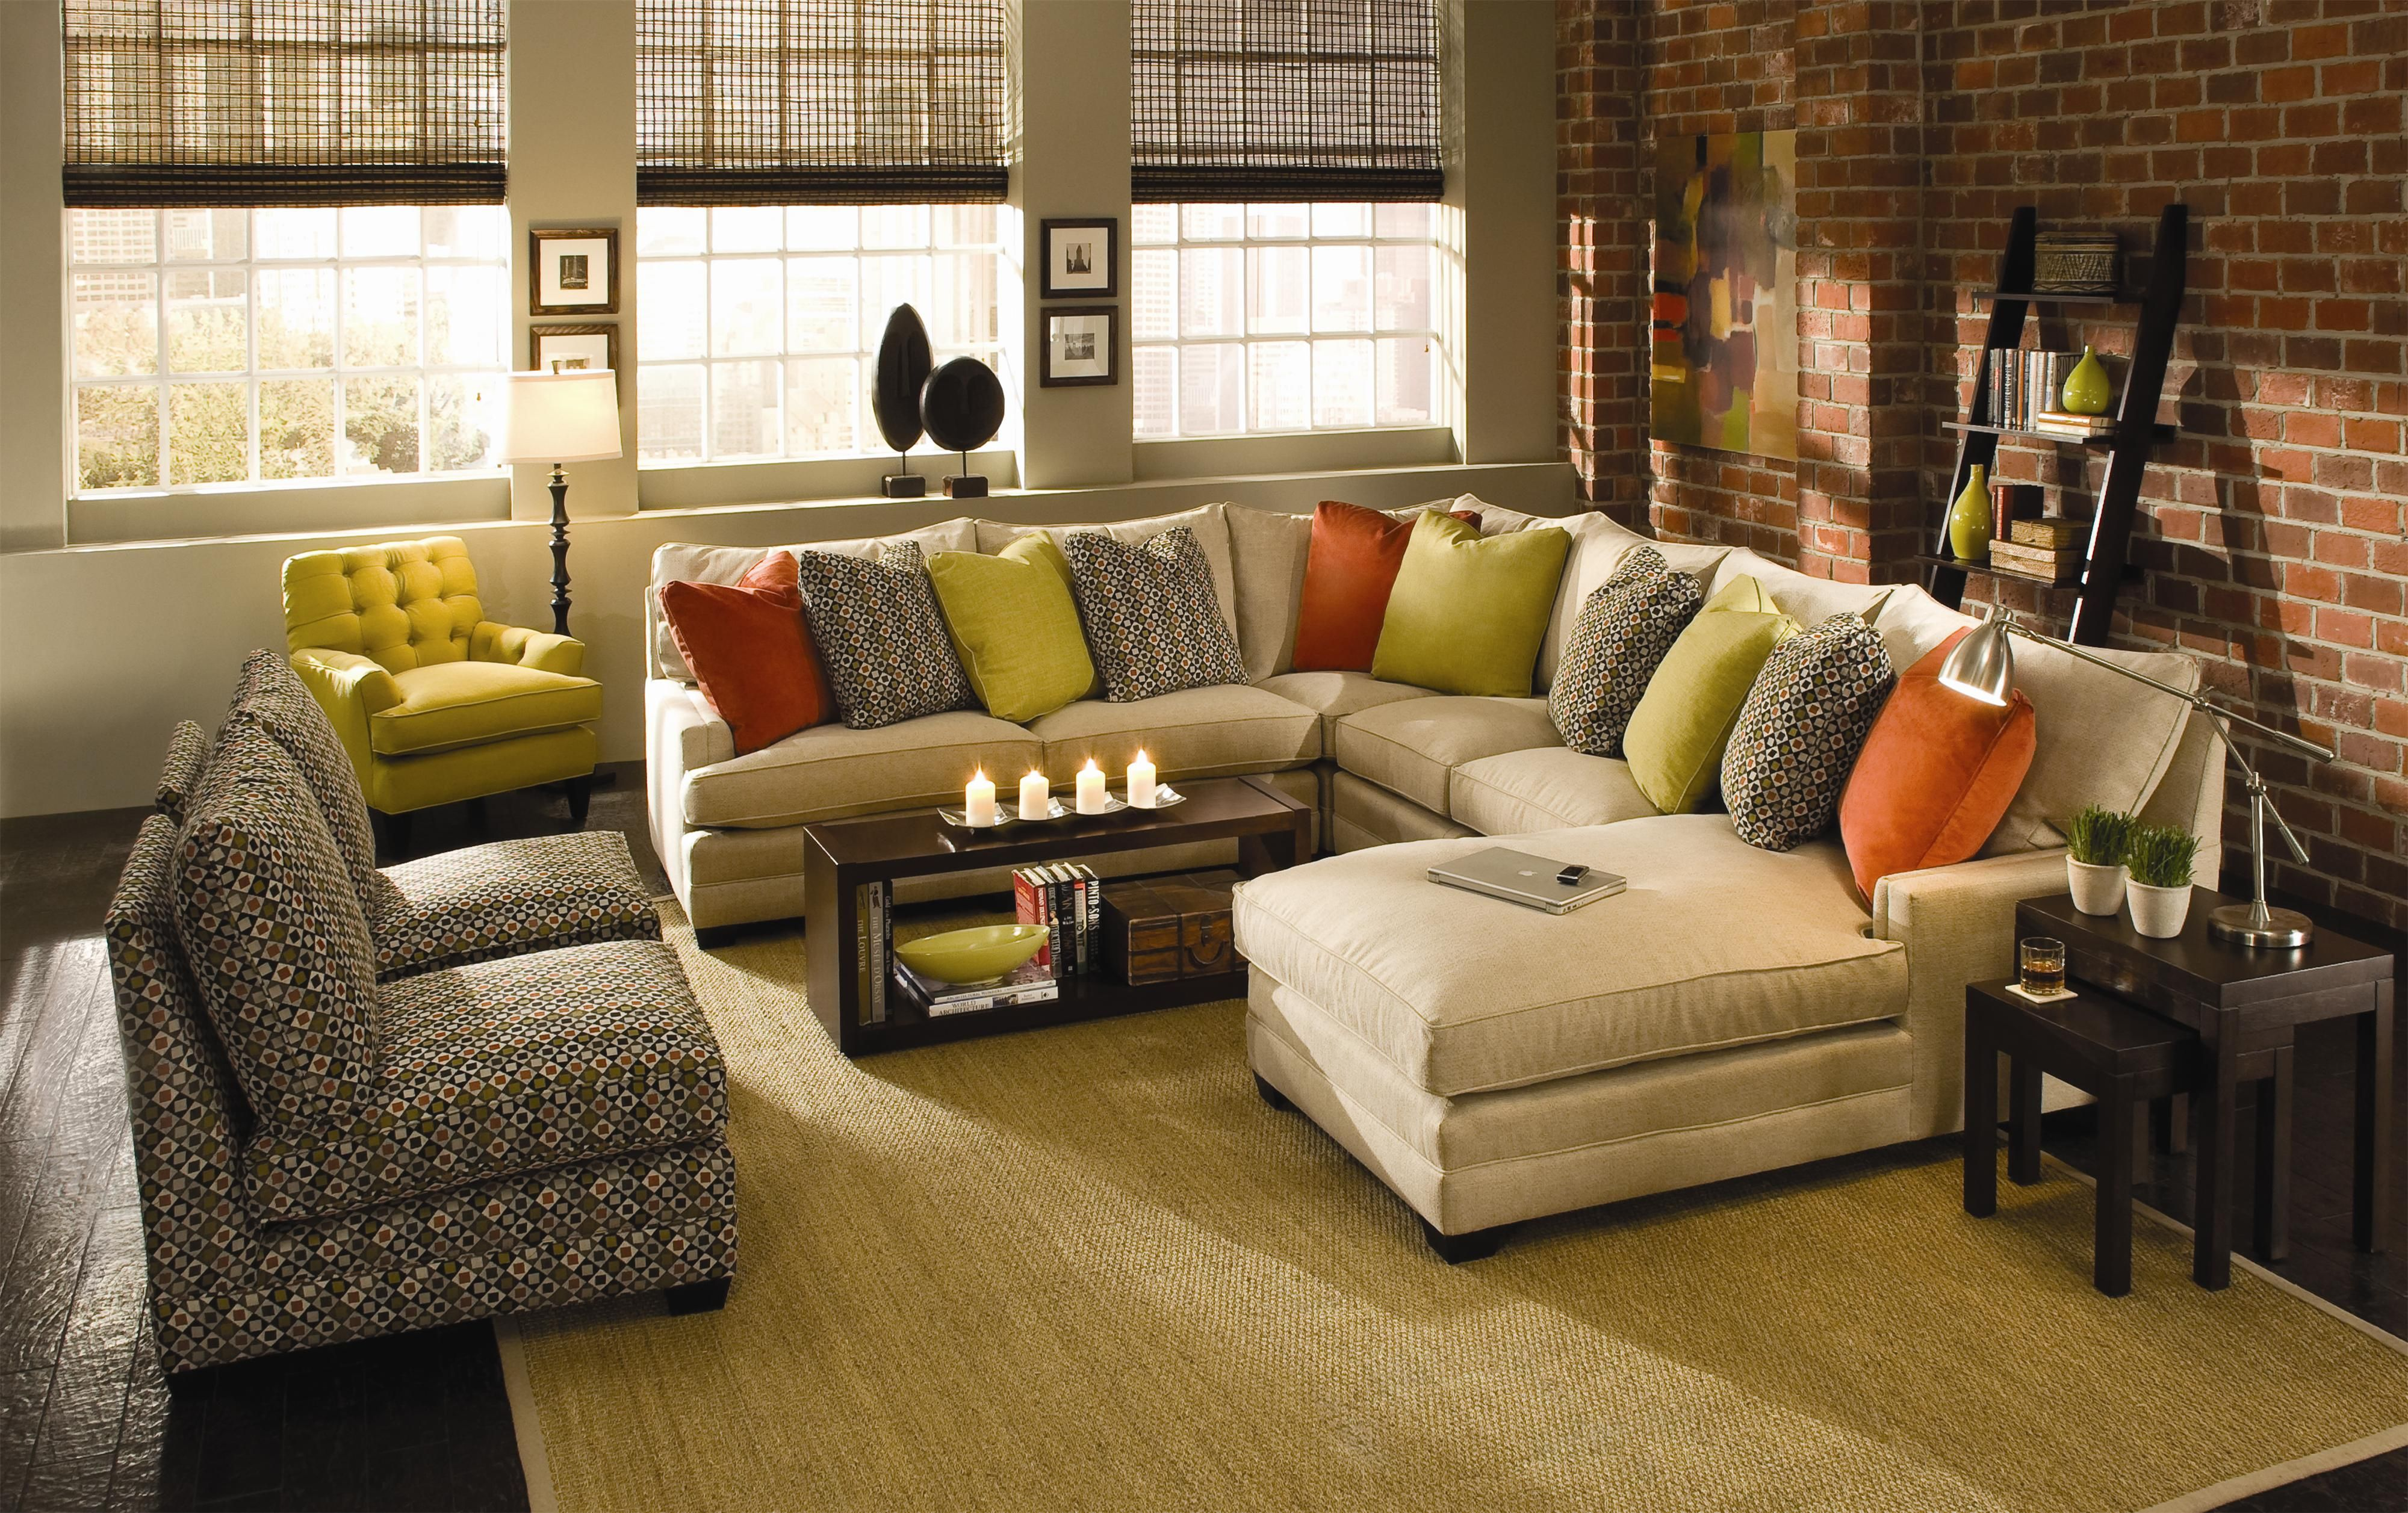 Sensational Margo Extra Wide Sectional Sofa By Sam Moore Knoxville Pdpeps Interior Chair Design Pdpepsorg